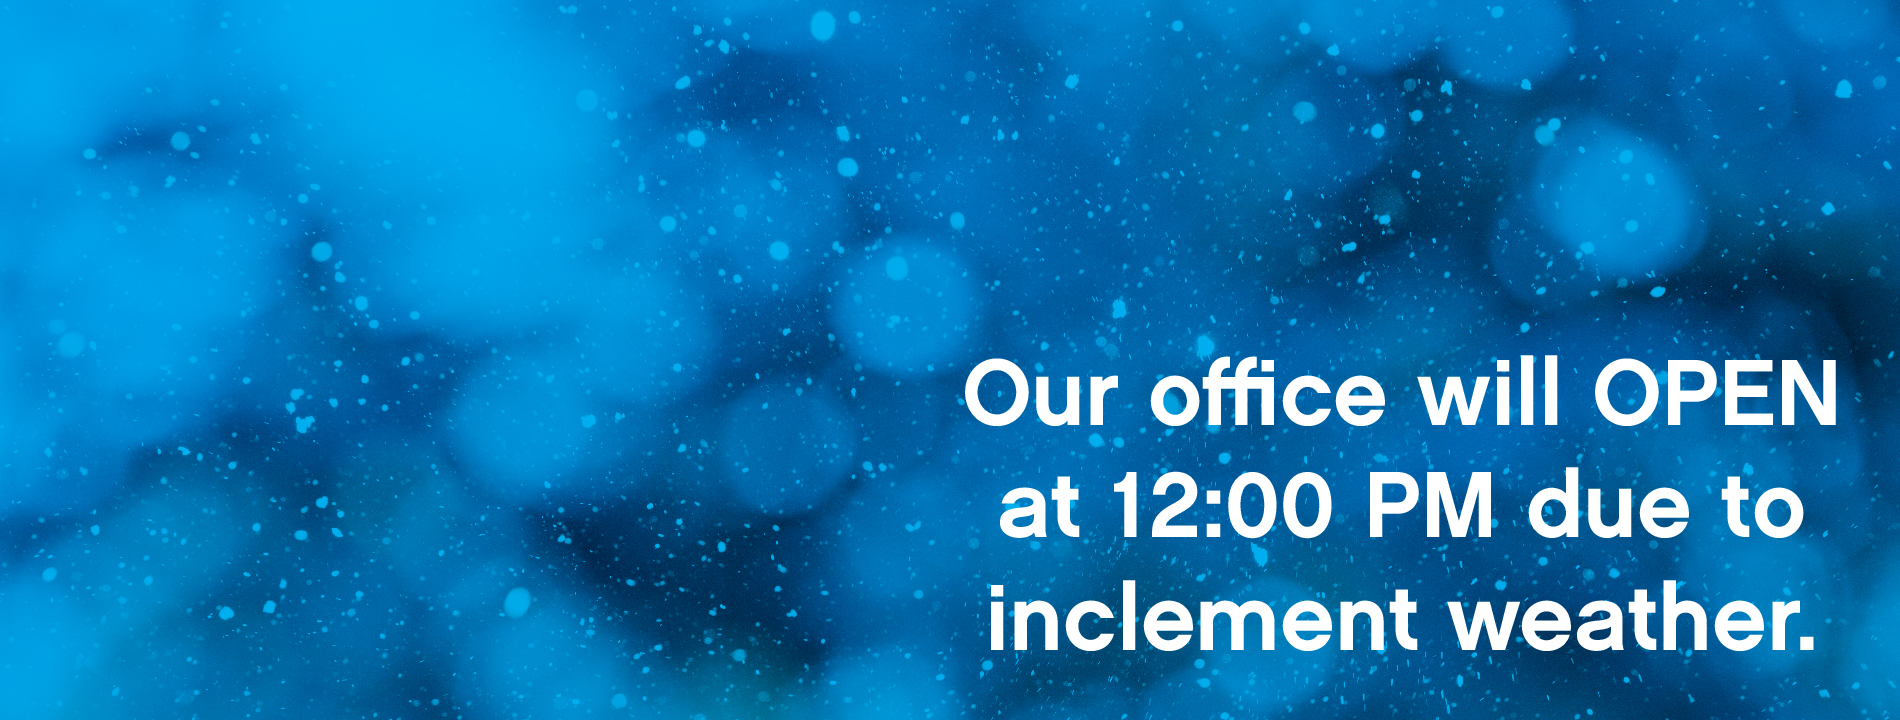 Our office will open at 12:00 PM due to inclement weather.